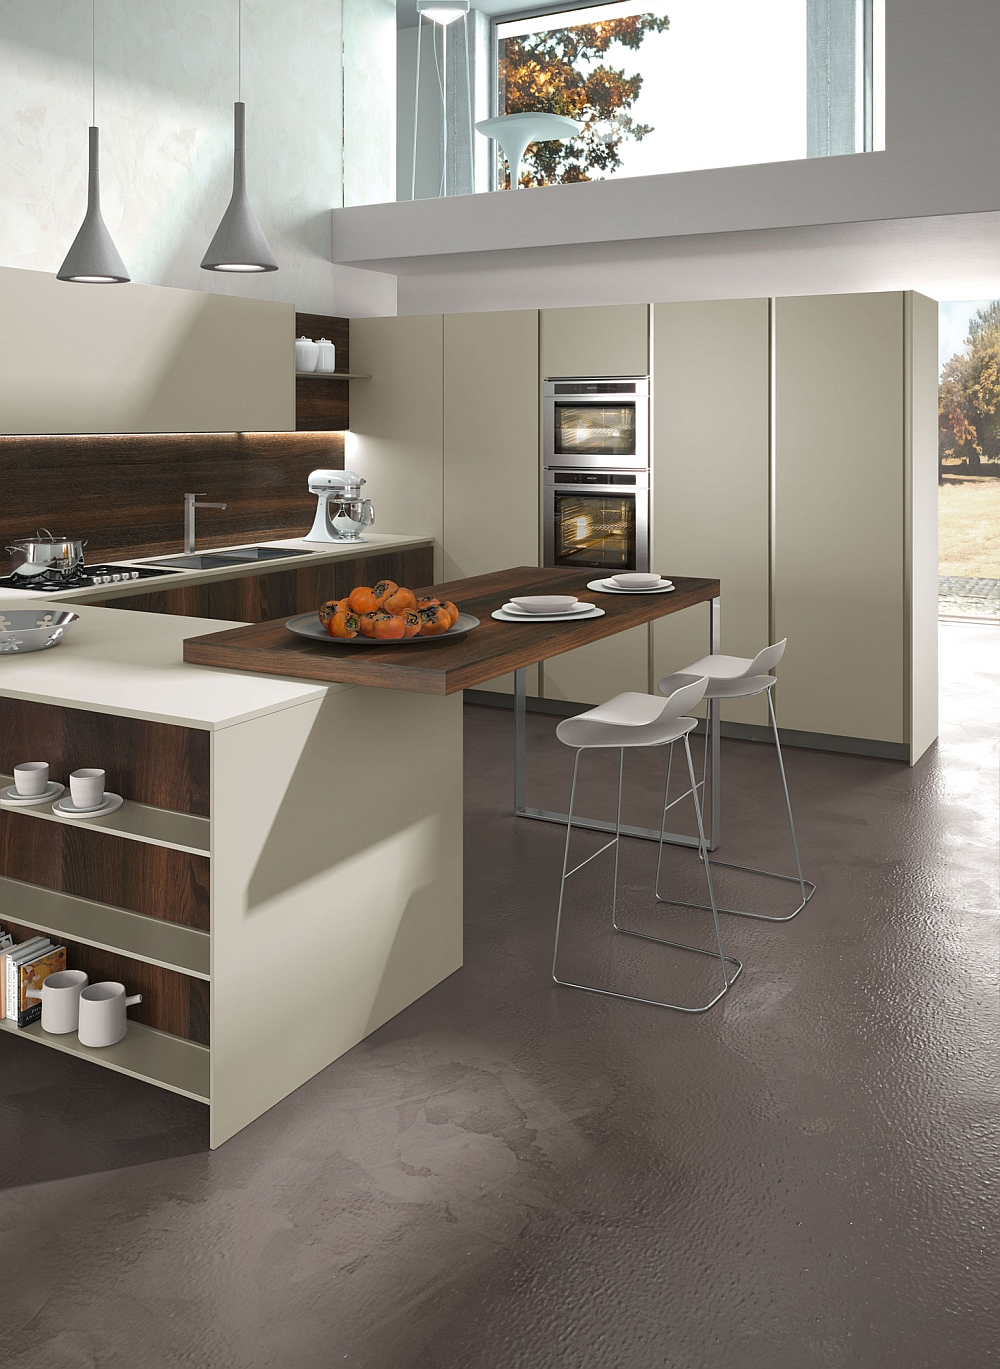 Living Room Cabinets Posh Kitchen Compositions Fuse Modularity With Minimal